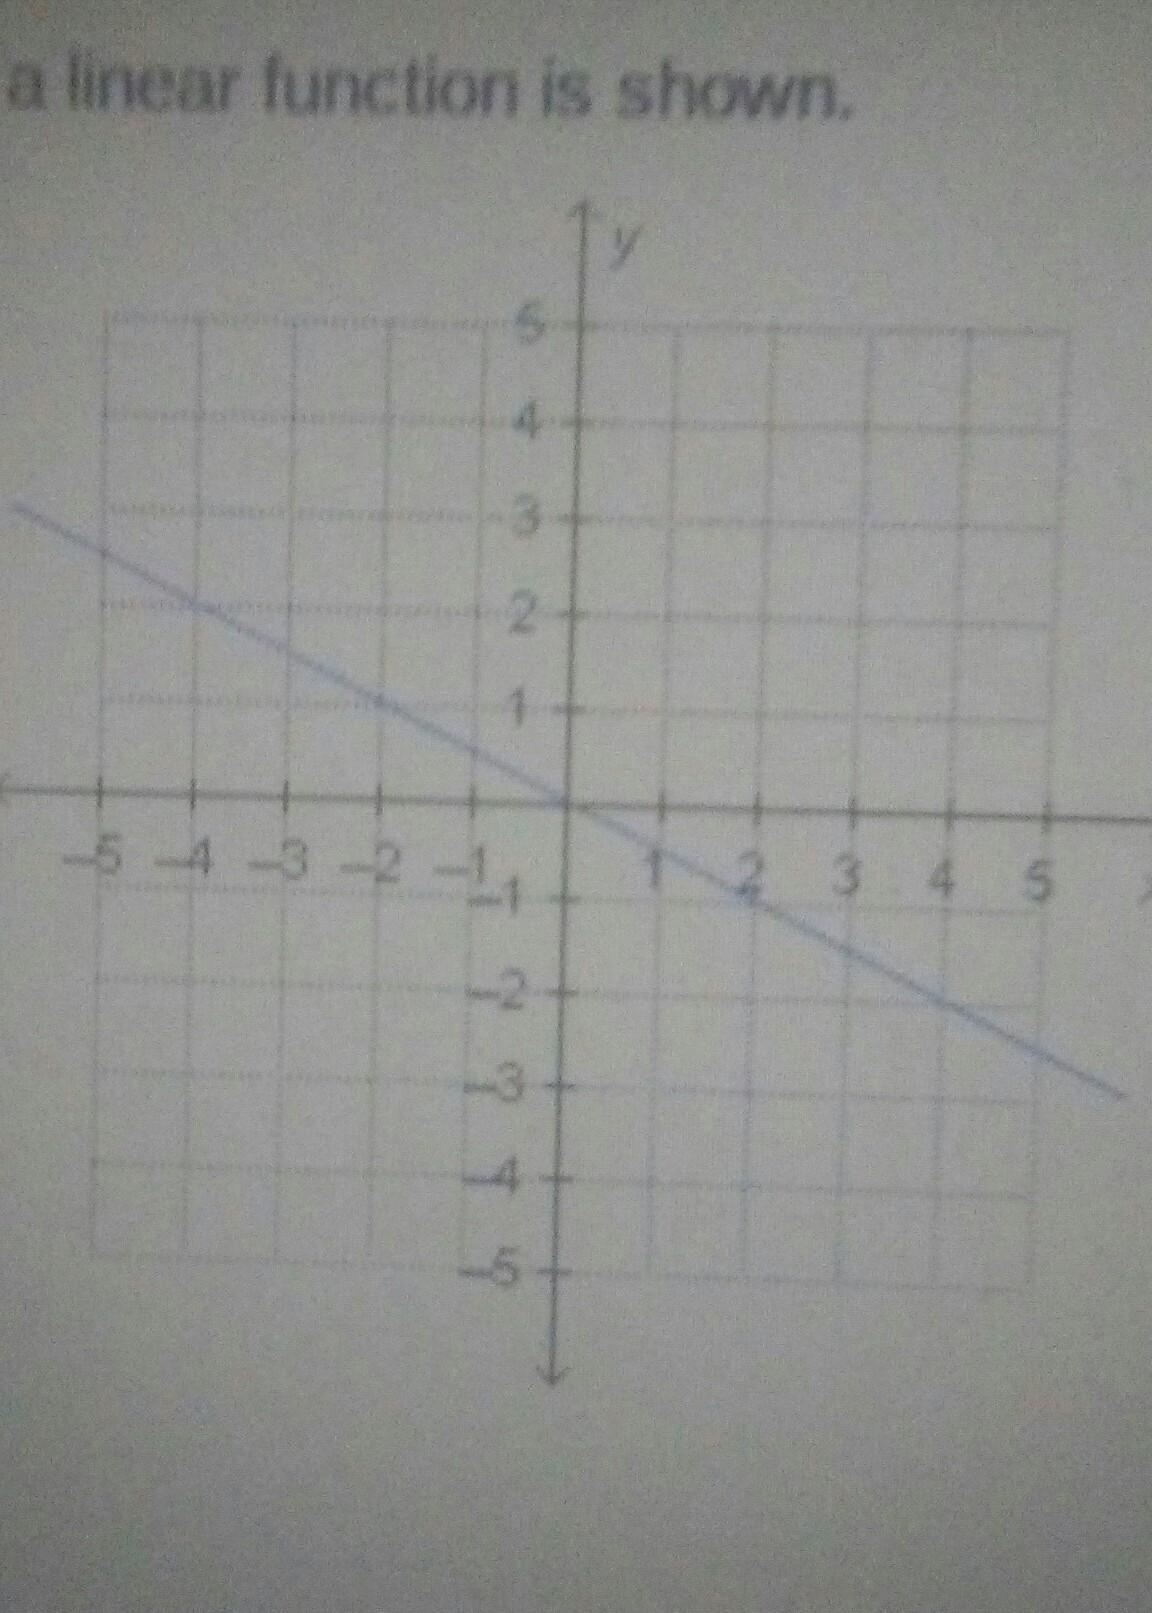 Another One The Graph Of A Linear Function Is Shown Which